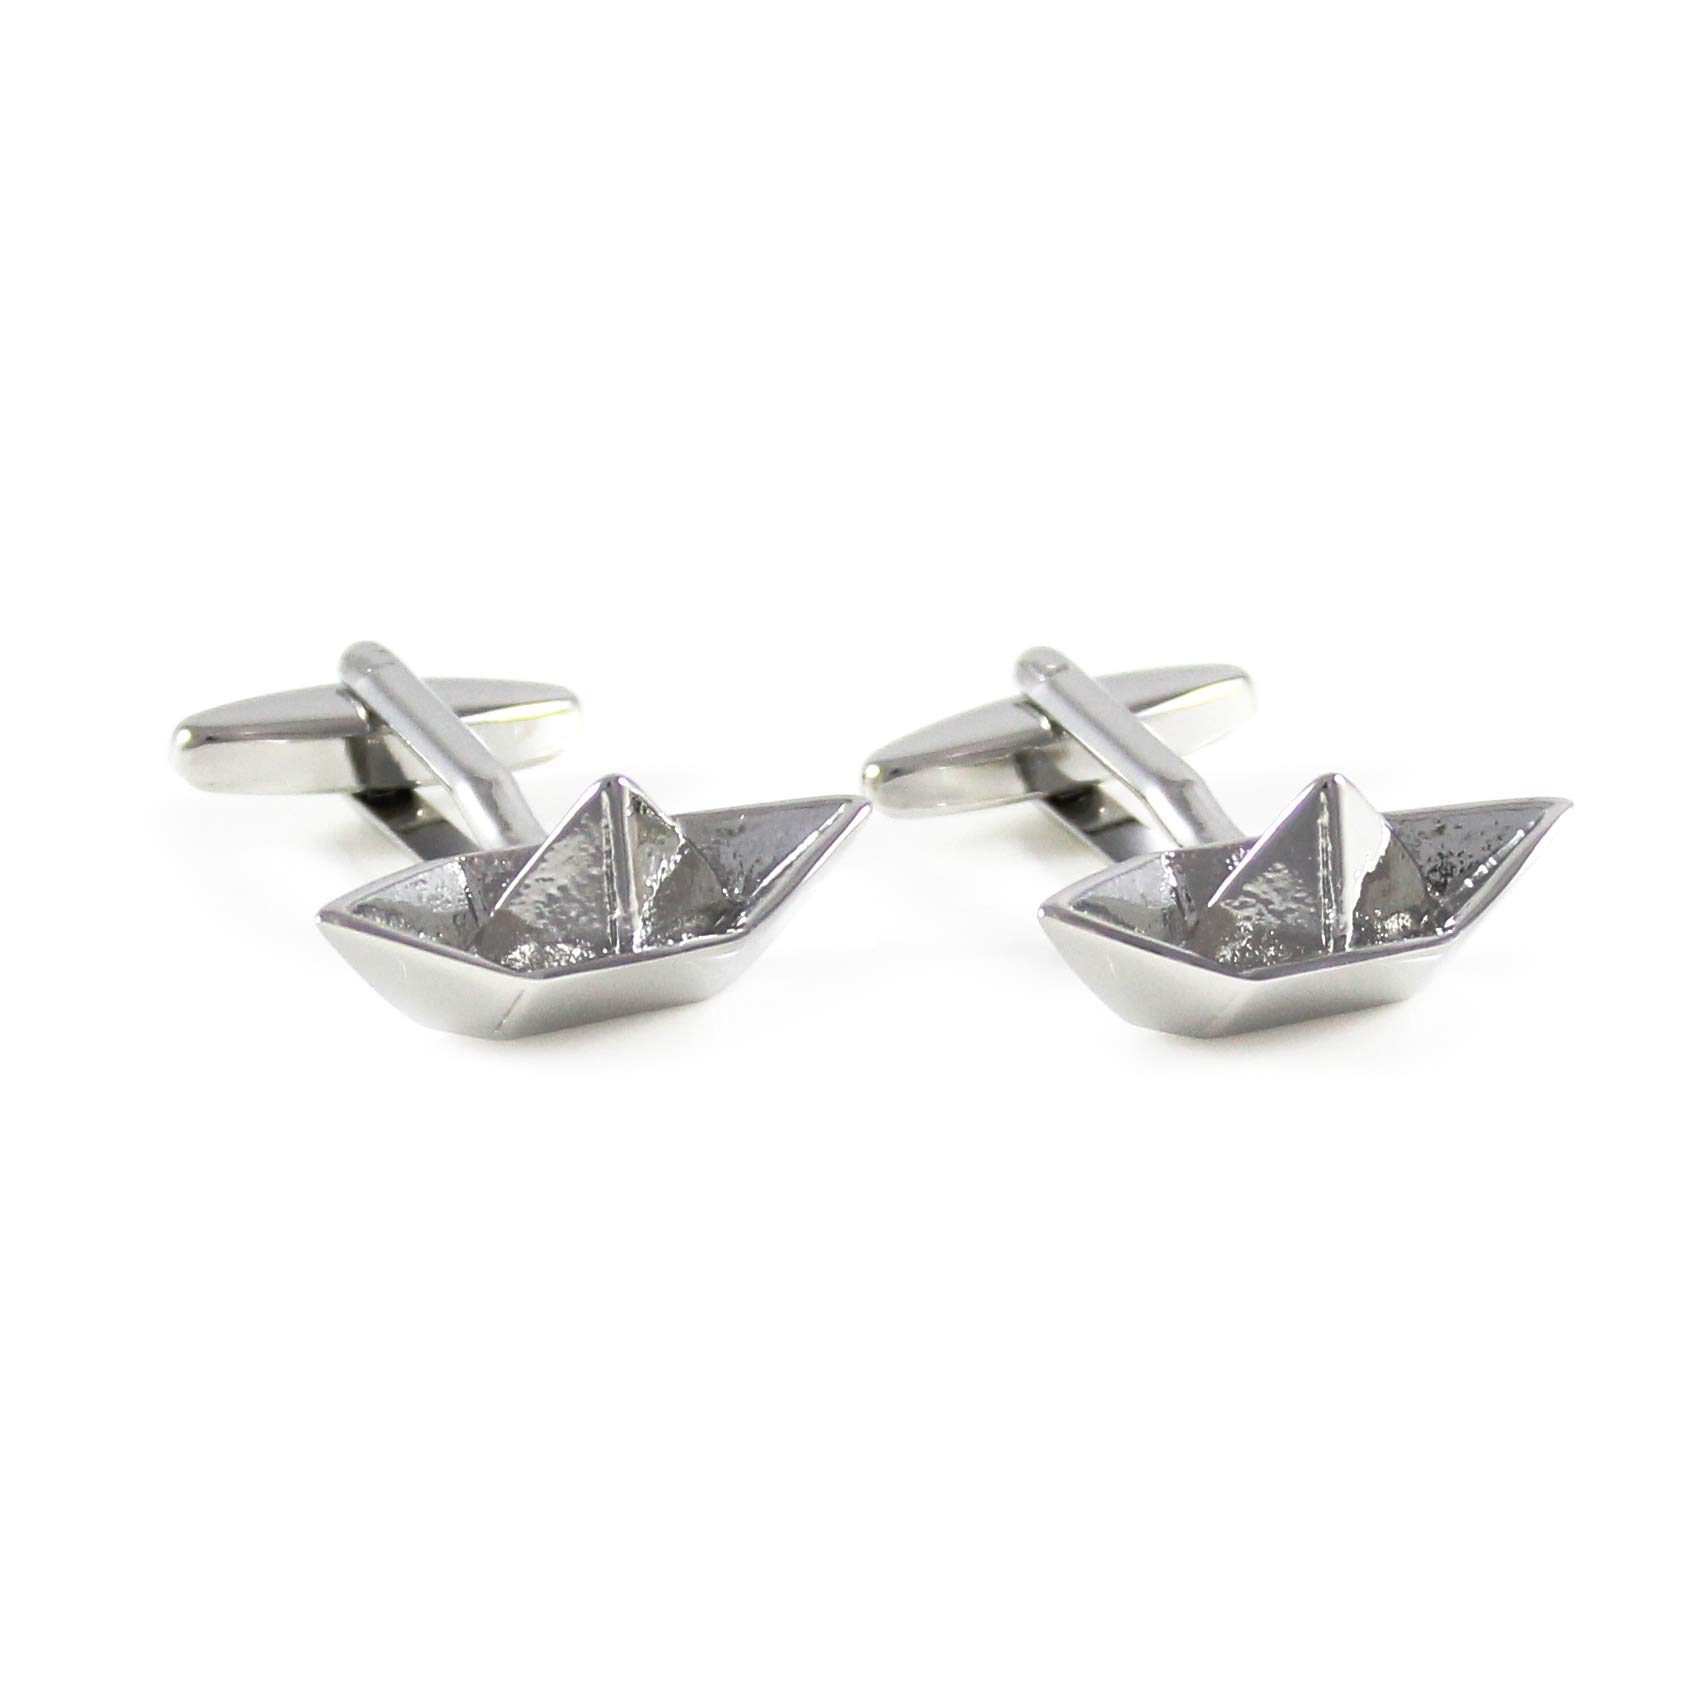 MENDEPOT Rhodium Plated Silver Tone Origami Boat Cuff Links Paper Boat Cuff Links with Box